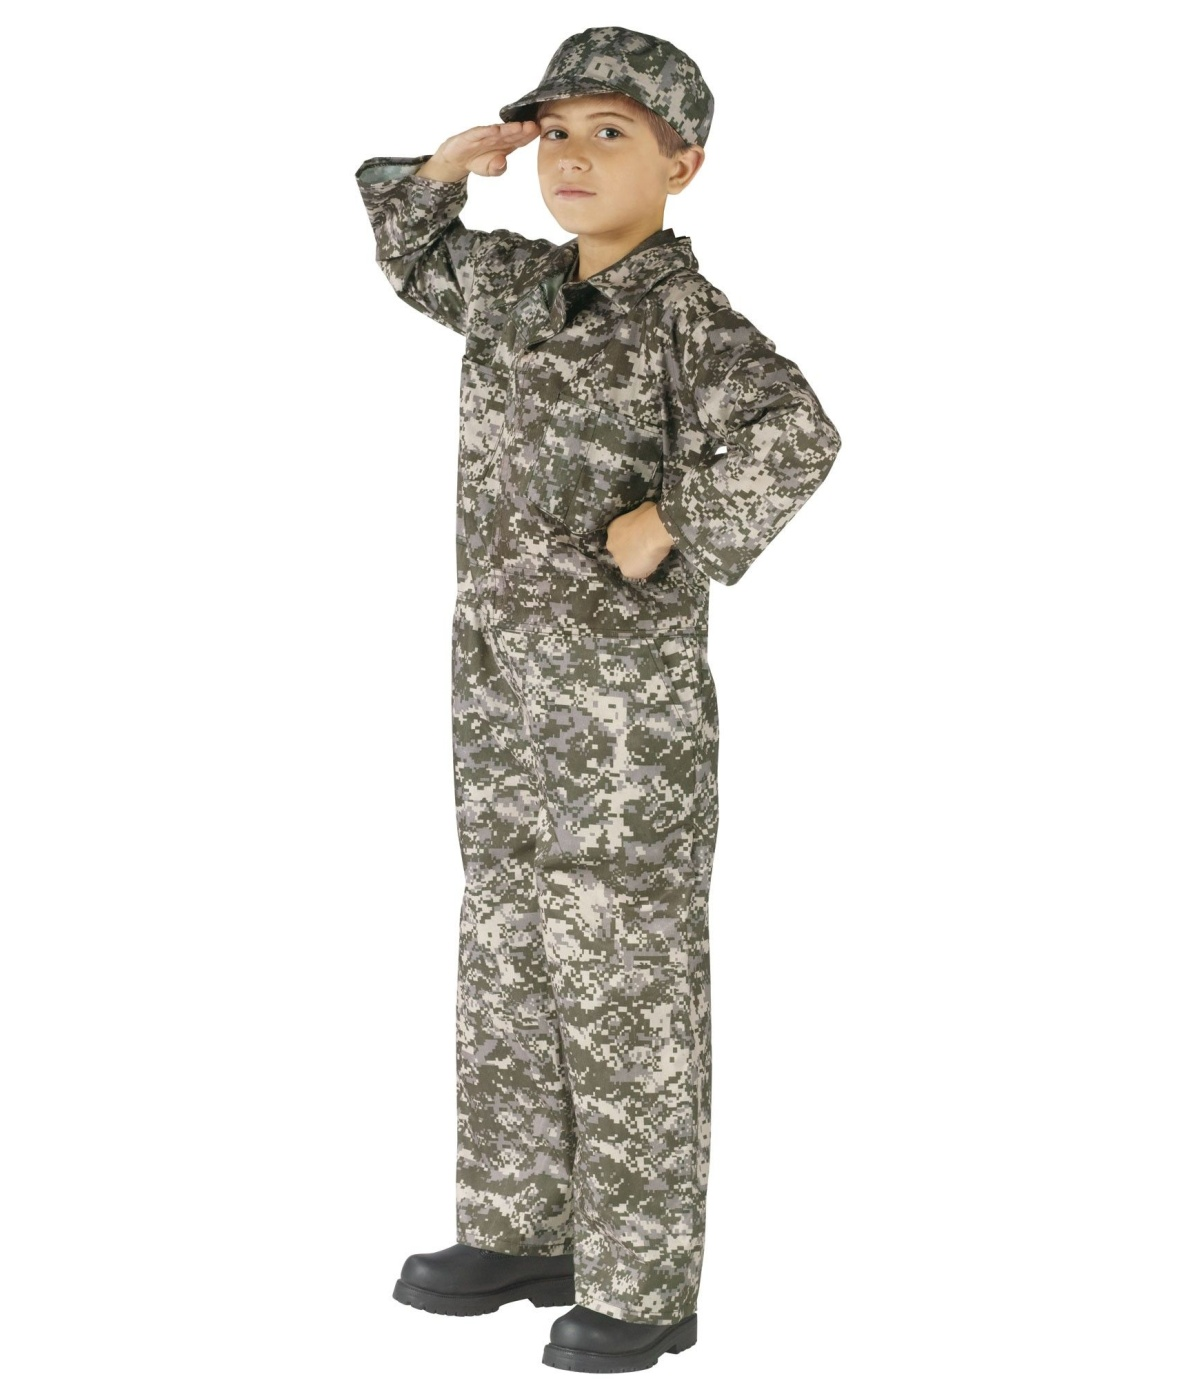 soldier costume soldier halloween costumes